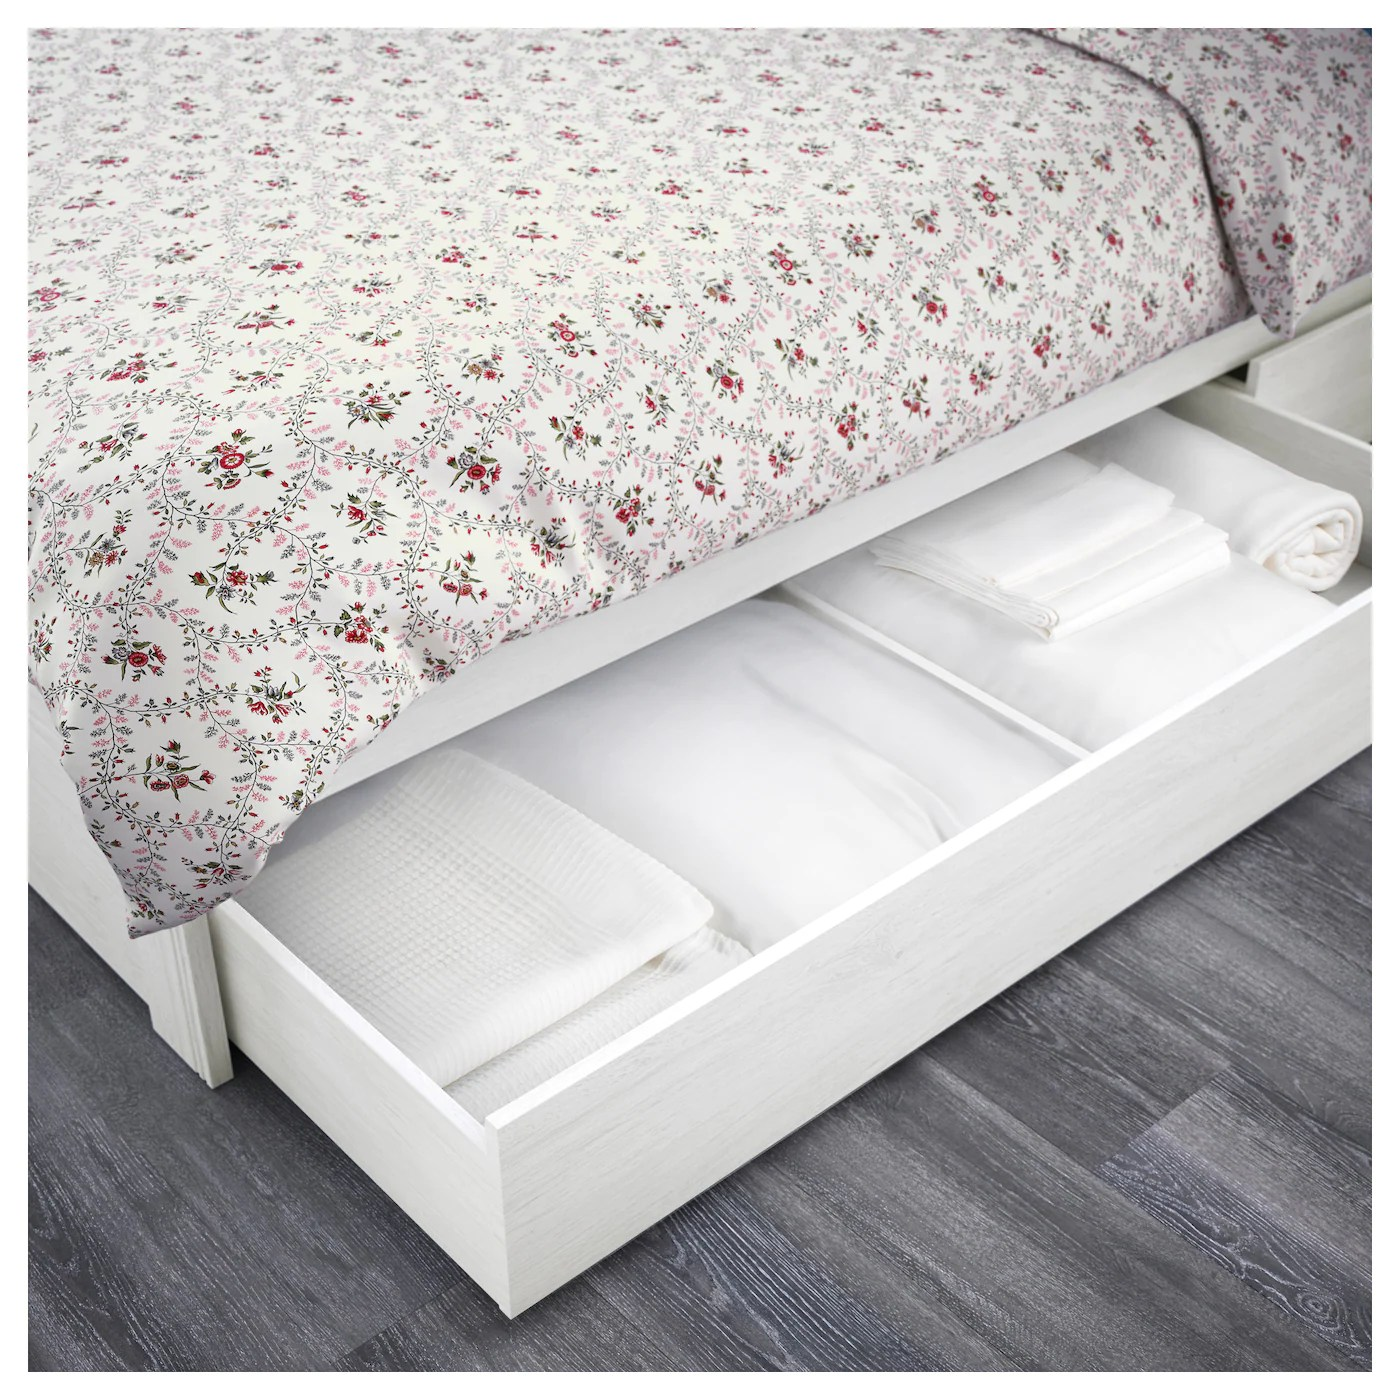 Box Bed Frame Brusali Bed Frame With 2 Storage Boxes White 140x200 Cm Ikea